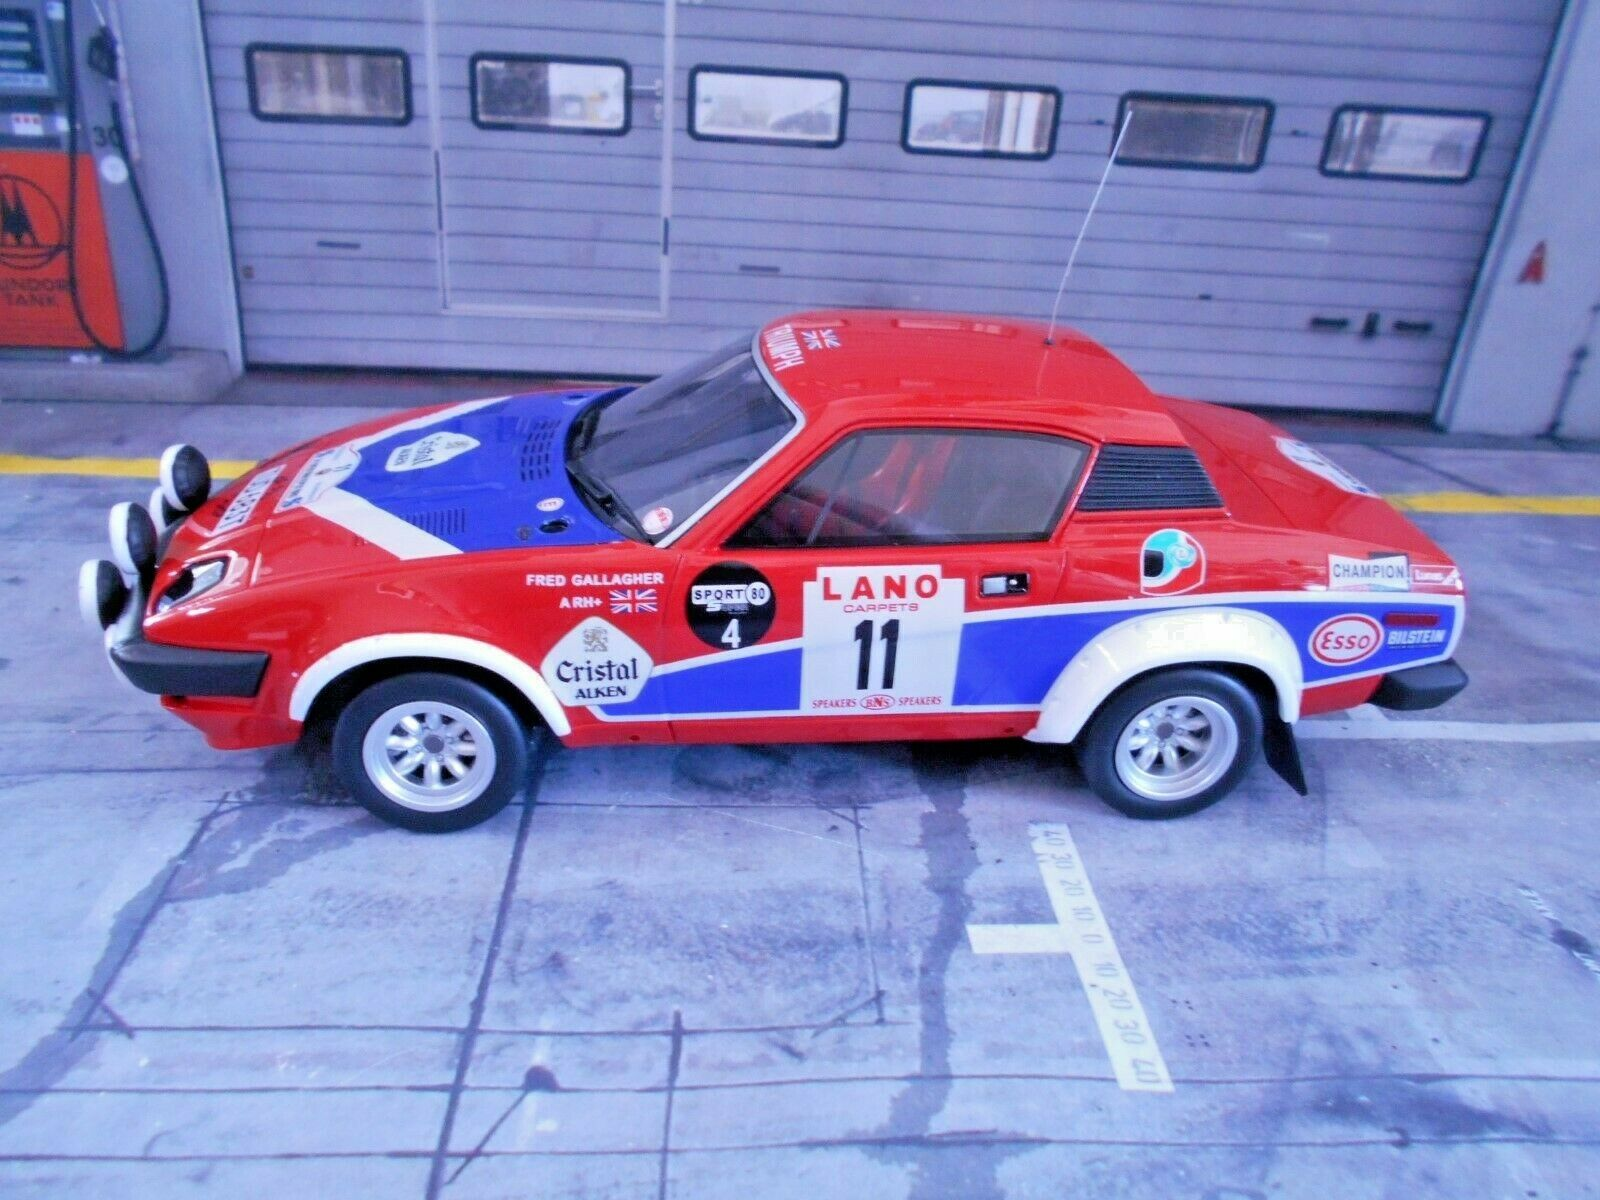 TRIUMPH tr7 v8 RALLY mis. 4 Ypres 1980  11 Pond WINNER resin otto SP 1 18